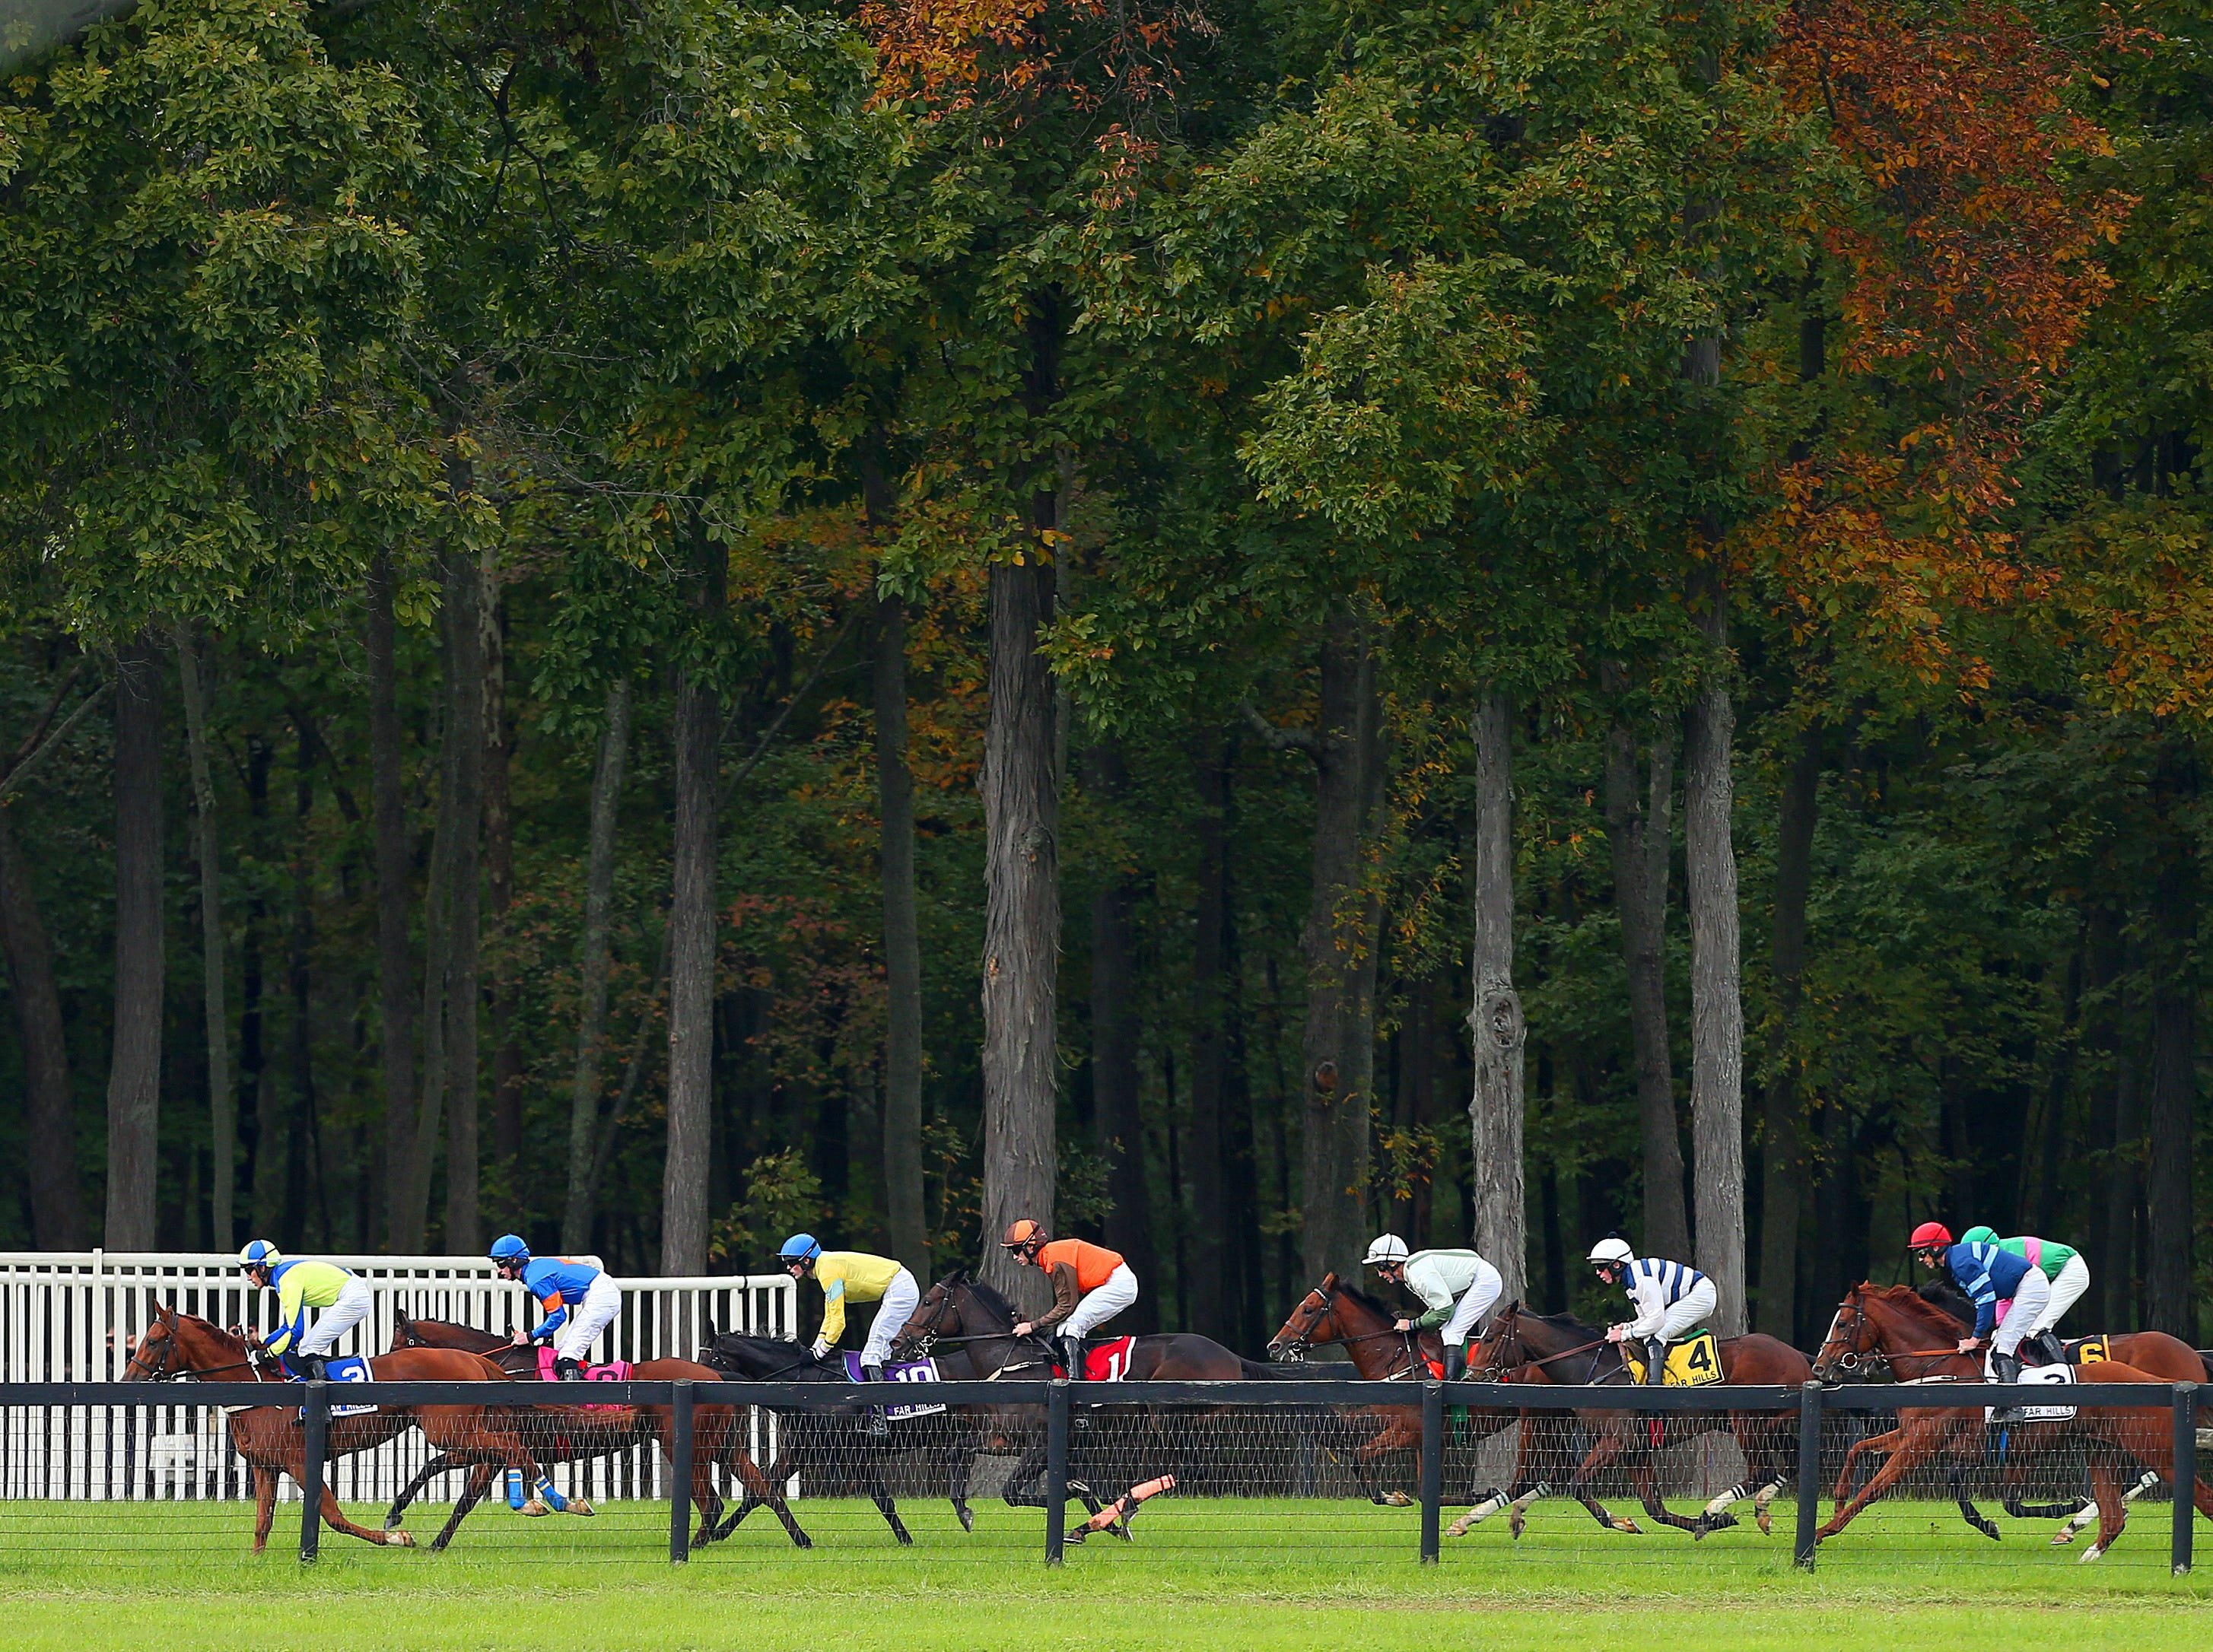 Horses on the back stretch in the Gladstone during the 98th running of the Far Hills Race Meeting at Moorland Farm in Far Hills, N.J. on Saturday, Oct. 20, 2015. Photo by Rich Schultz/ HNT